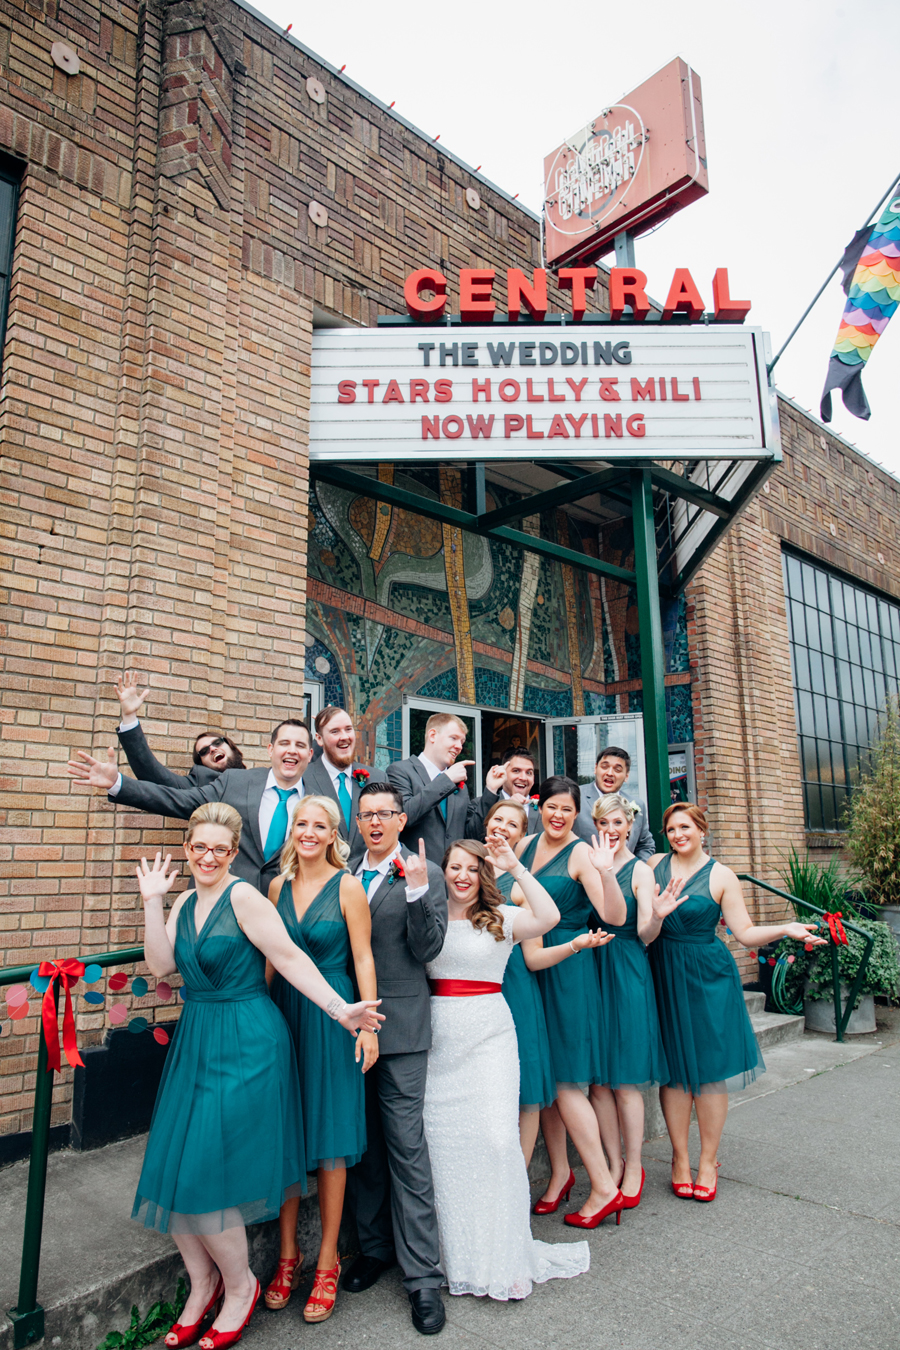 048-central-cinema-seattle-washington-wedding-kaheryn-moran-photography.jpg